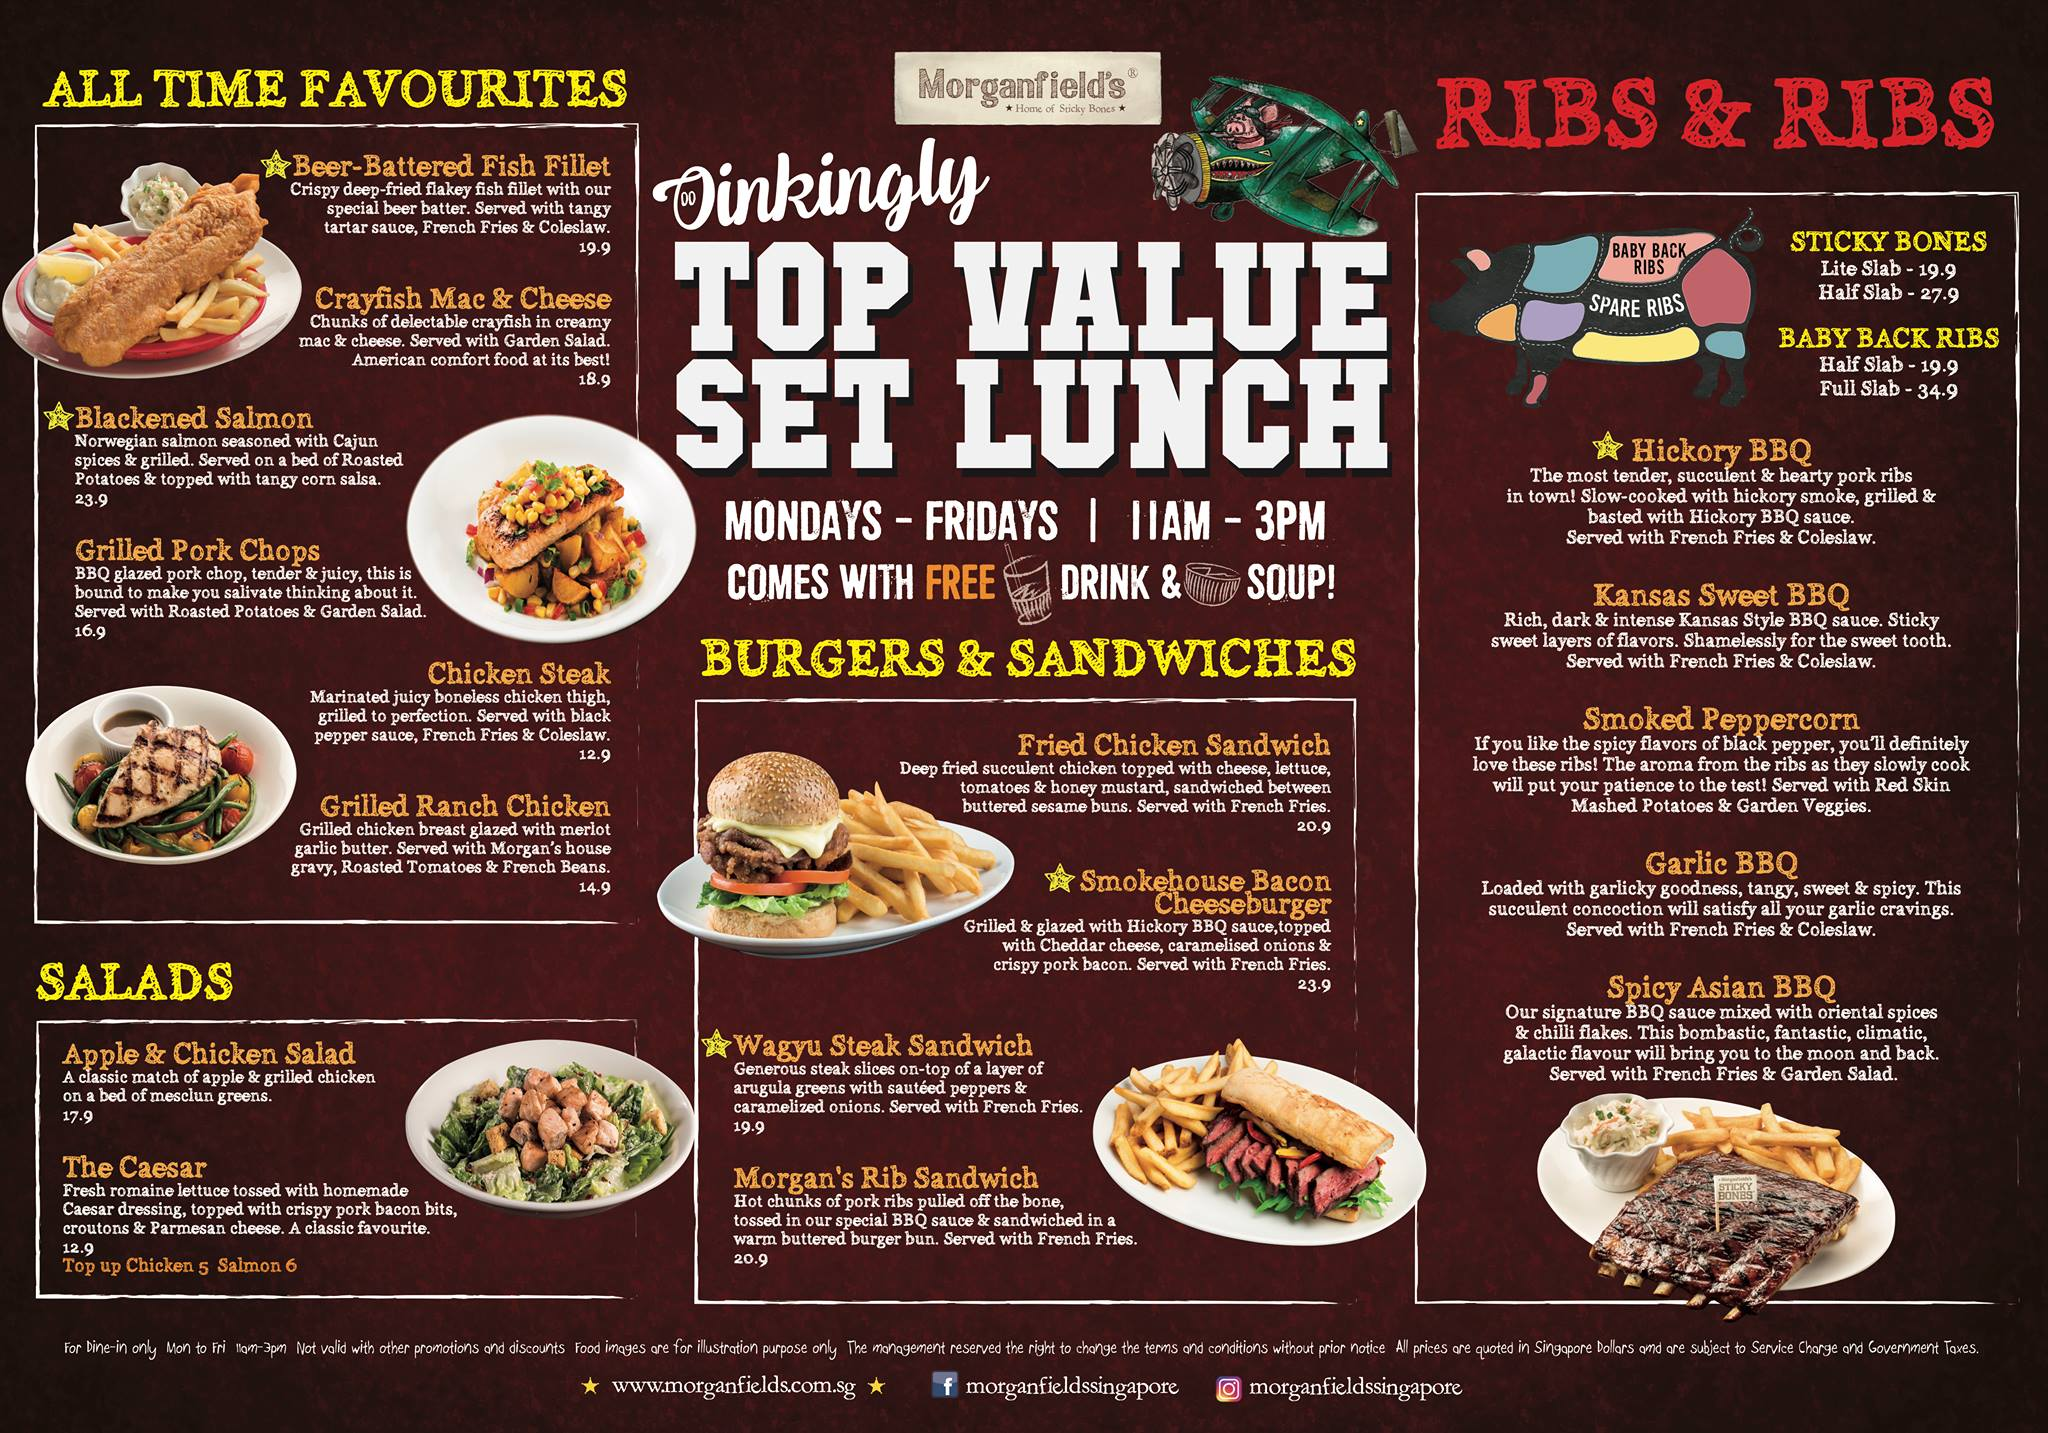 Morganfield's - Set Lunch Menu - TREAT